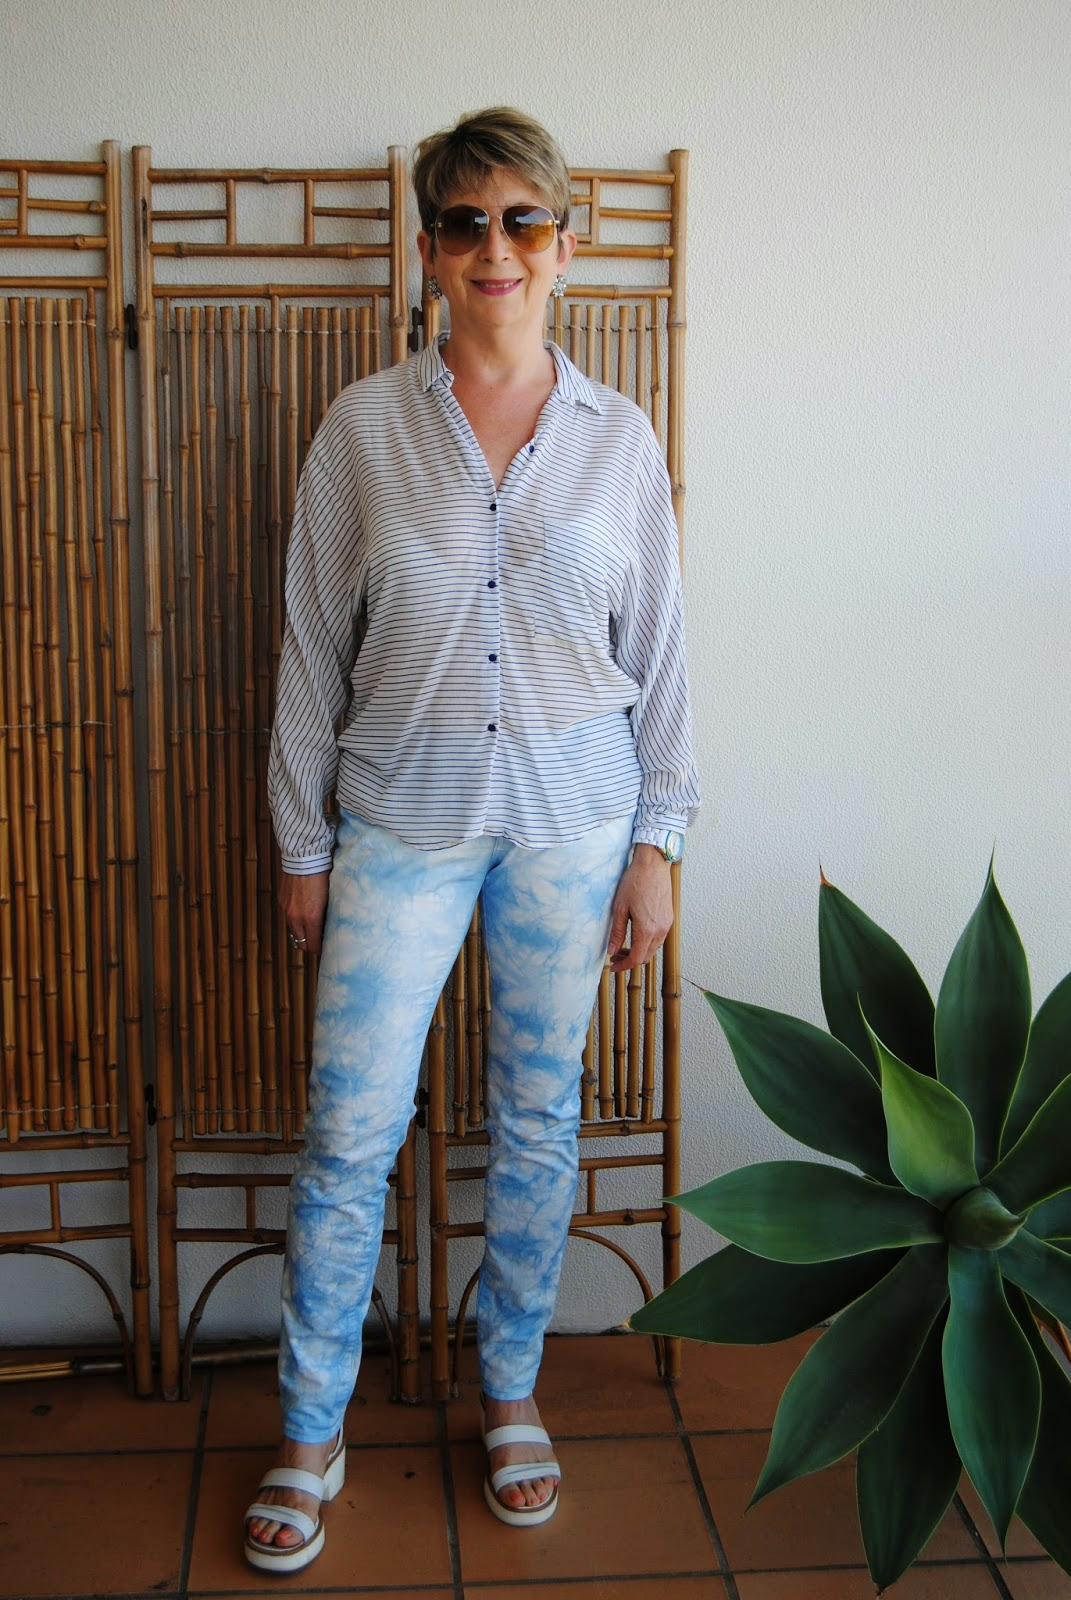 marble coloured blue jeans and stripy shirt for a relaxed look